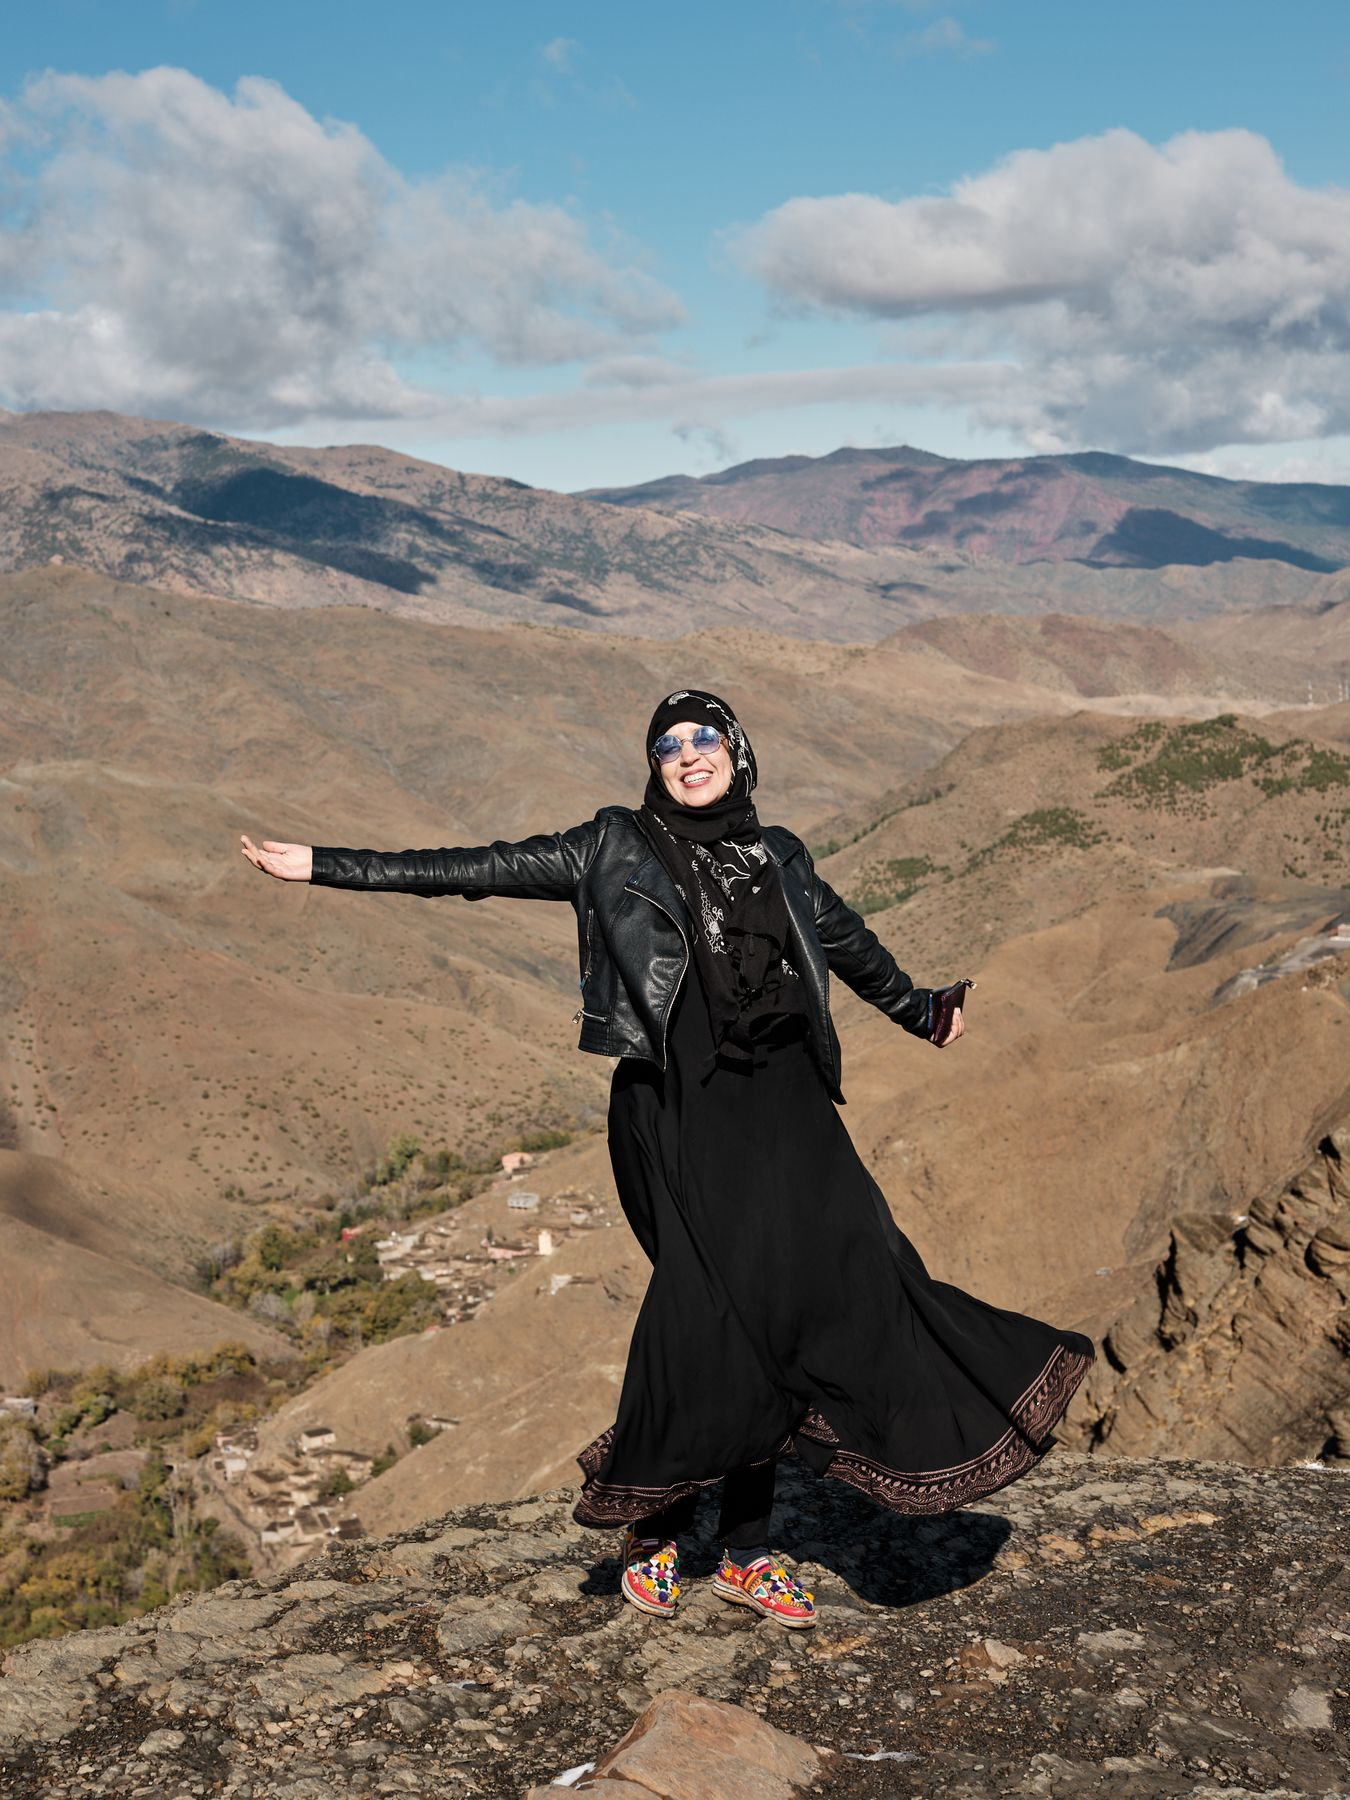 Chama Ouammi, the first female guide in Morocco's Aït Bouguemez valley